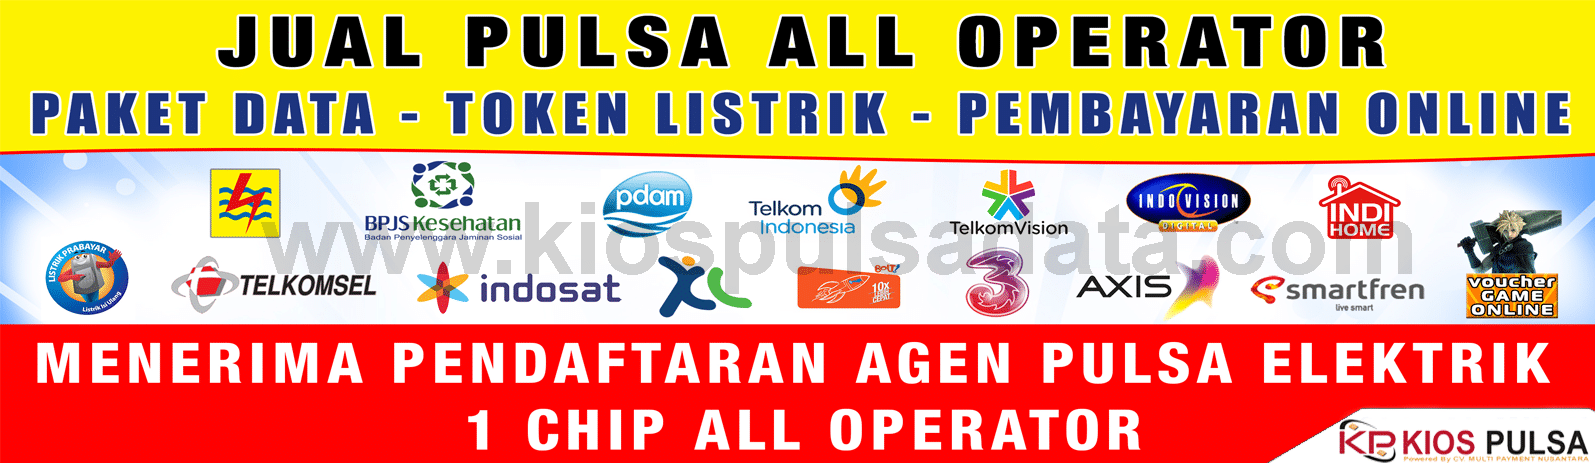 Top up mobile legend murah